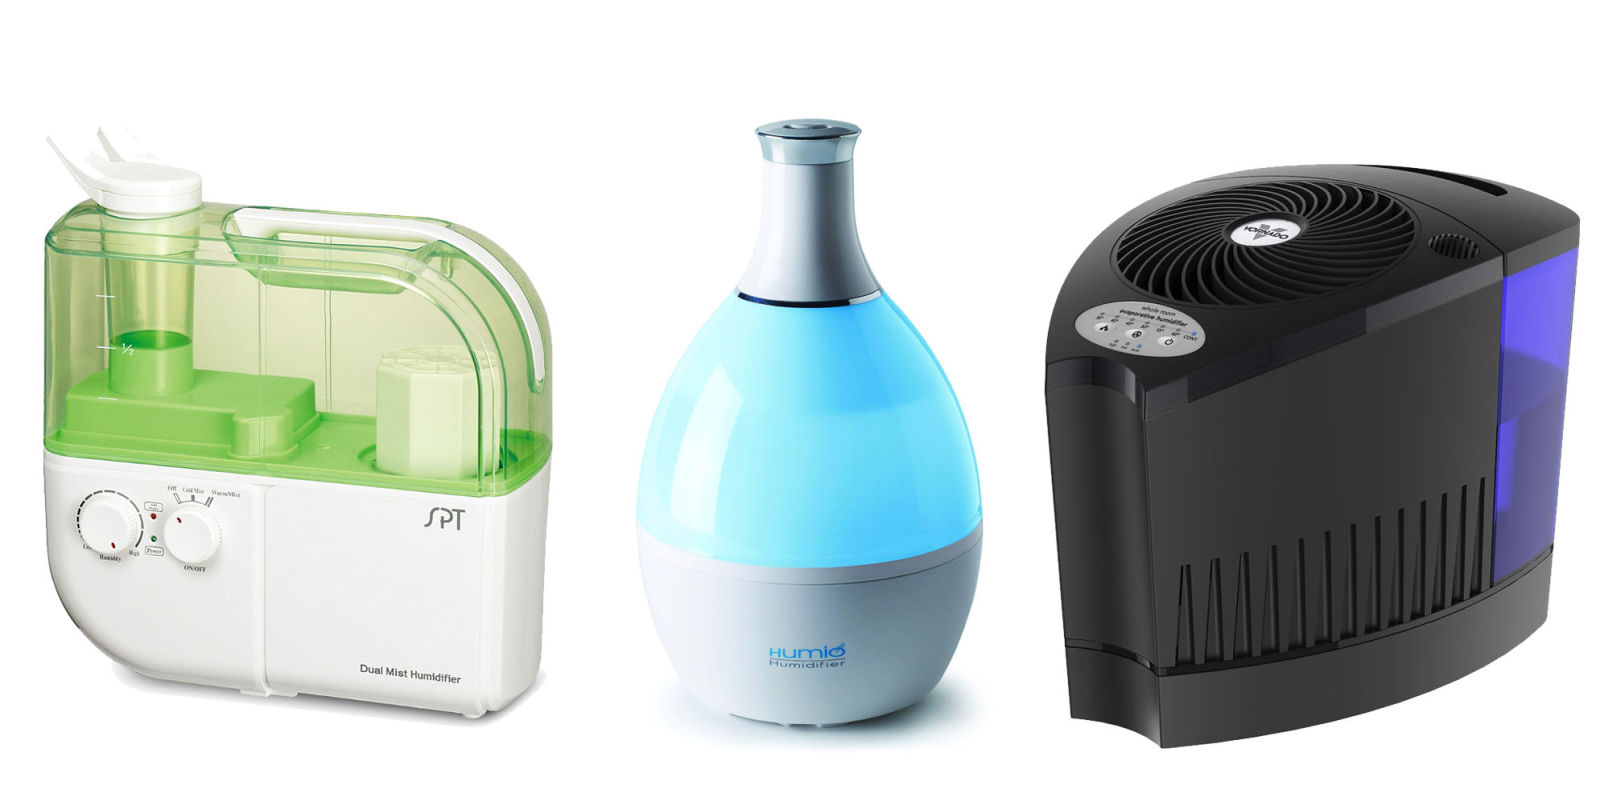 2016 single room humidifiers under 100 cheap cool mist for Small room vaporizer